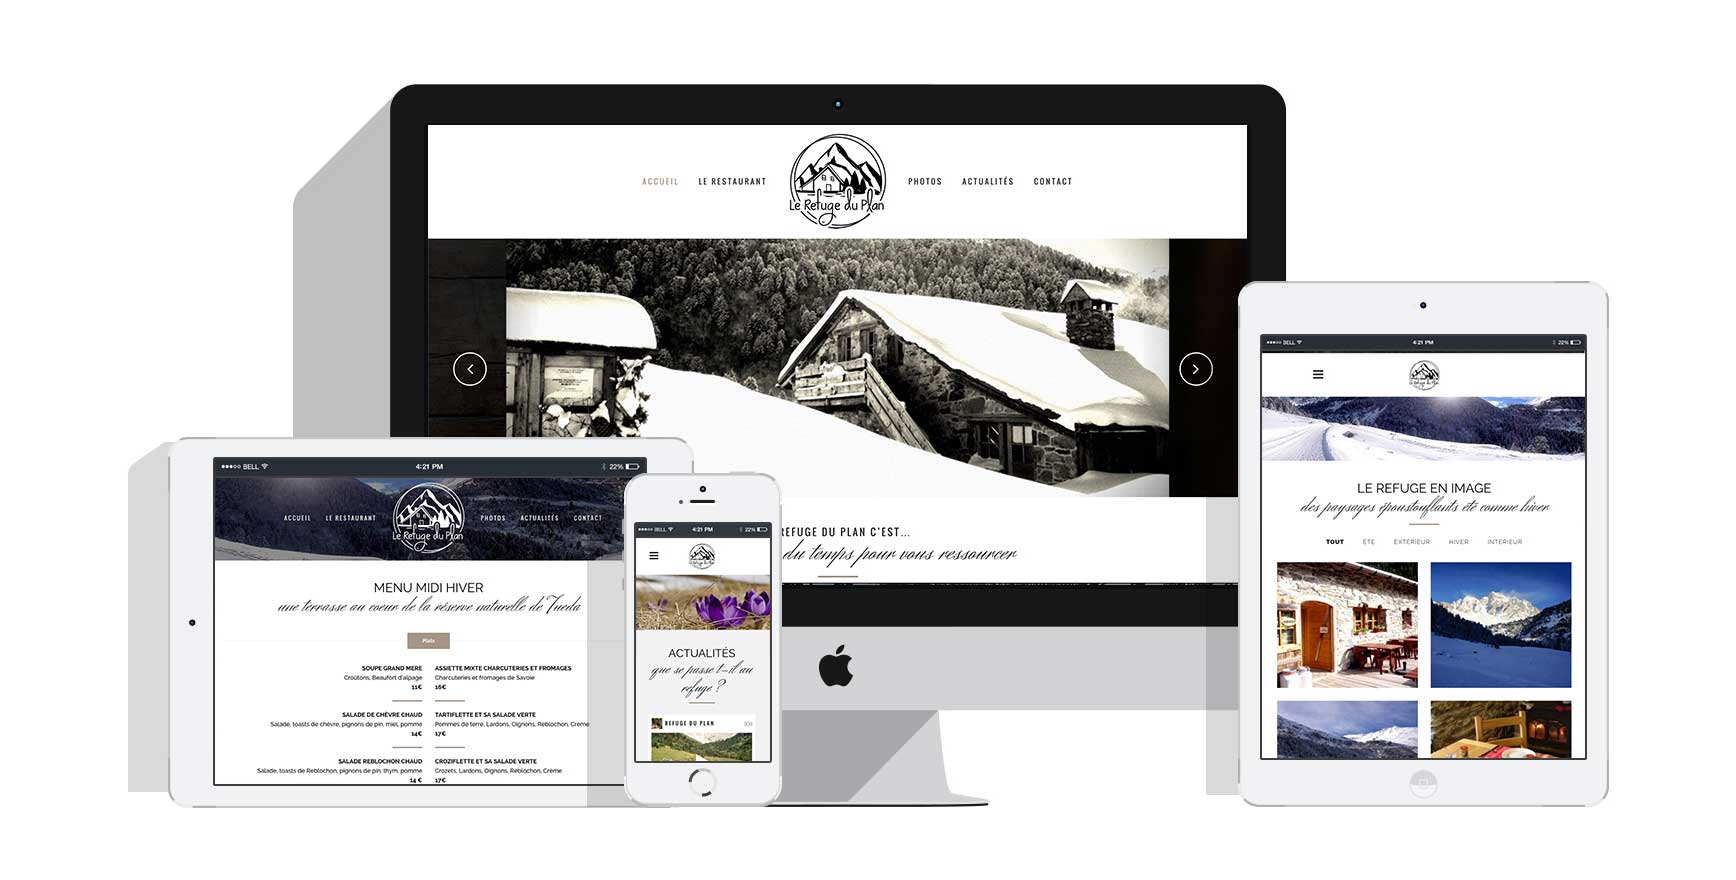 portfolio-refuge-du-plan-florence-borrel-flobo-design-graphique-infographie-webdesign-savoie-tarentaise-meribel-menuires-courchevel